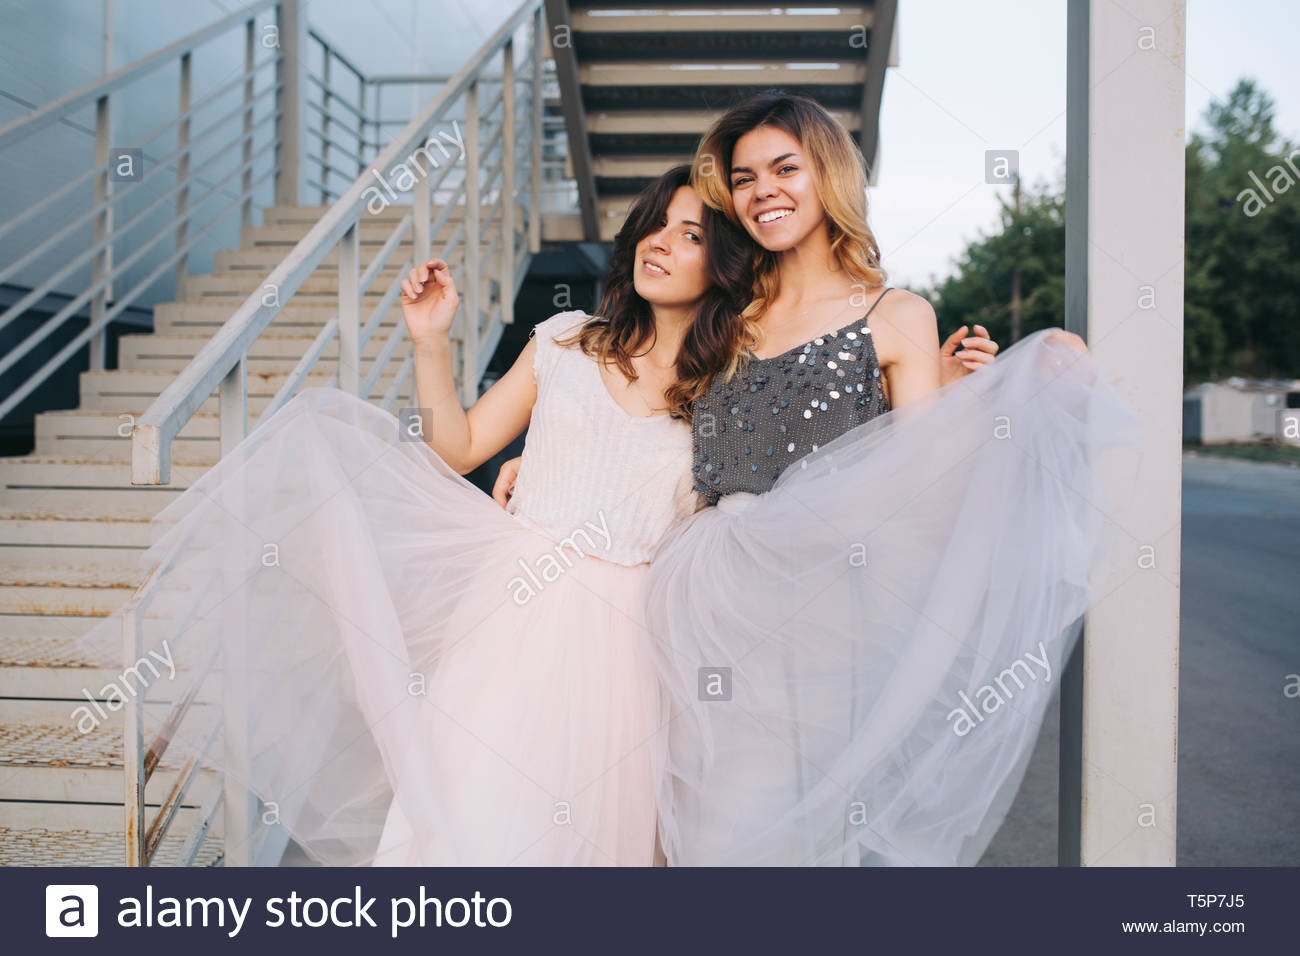 Beautiful models hugging outdoor near stairs. They wear flying tulle skirts, looking to camera - Stock Image